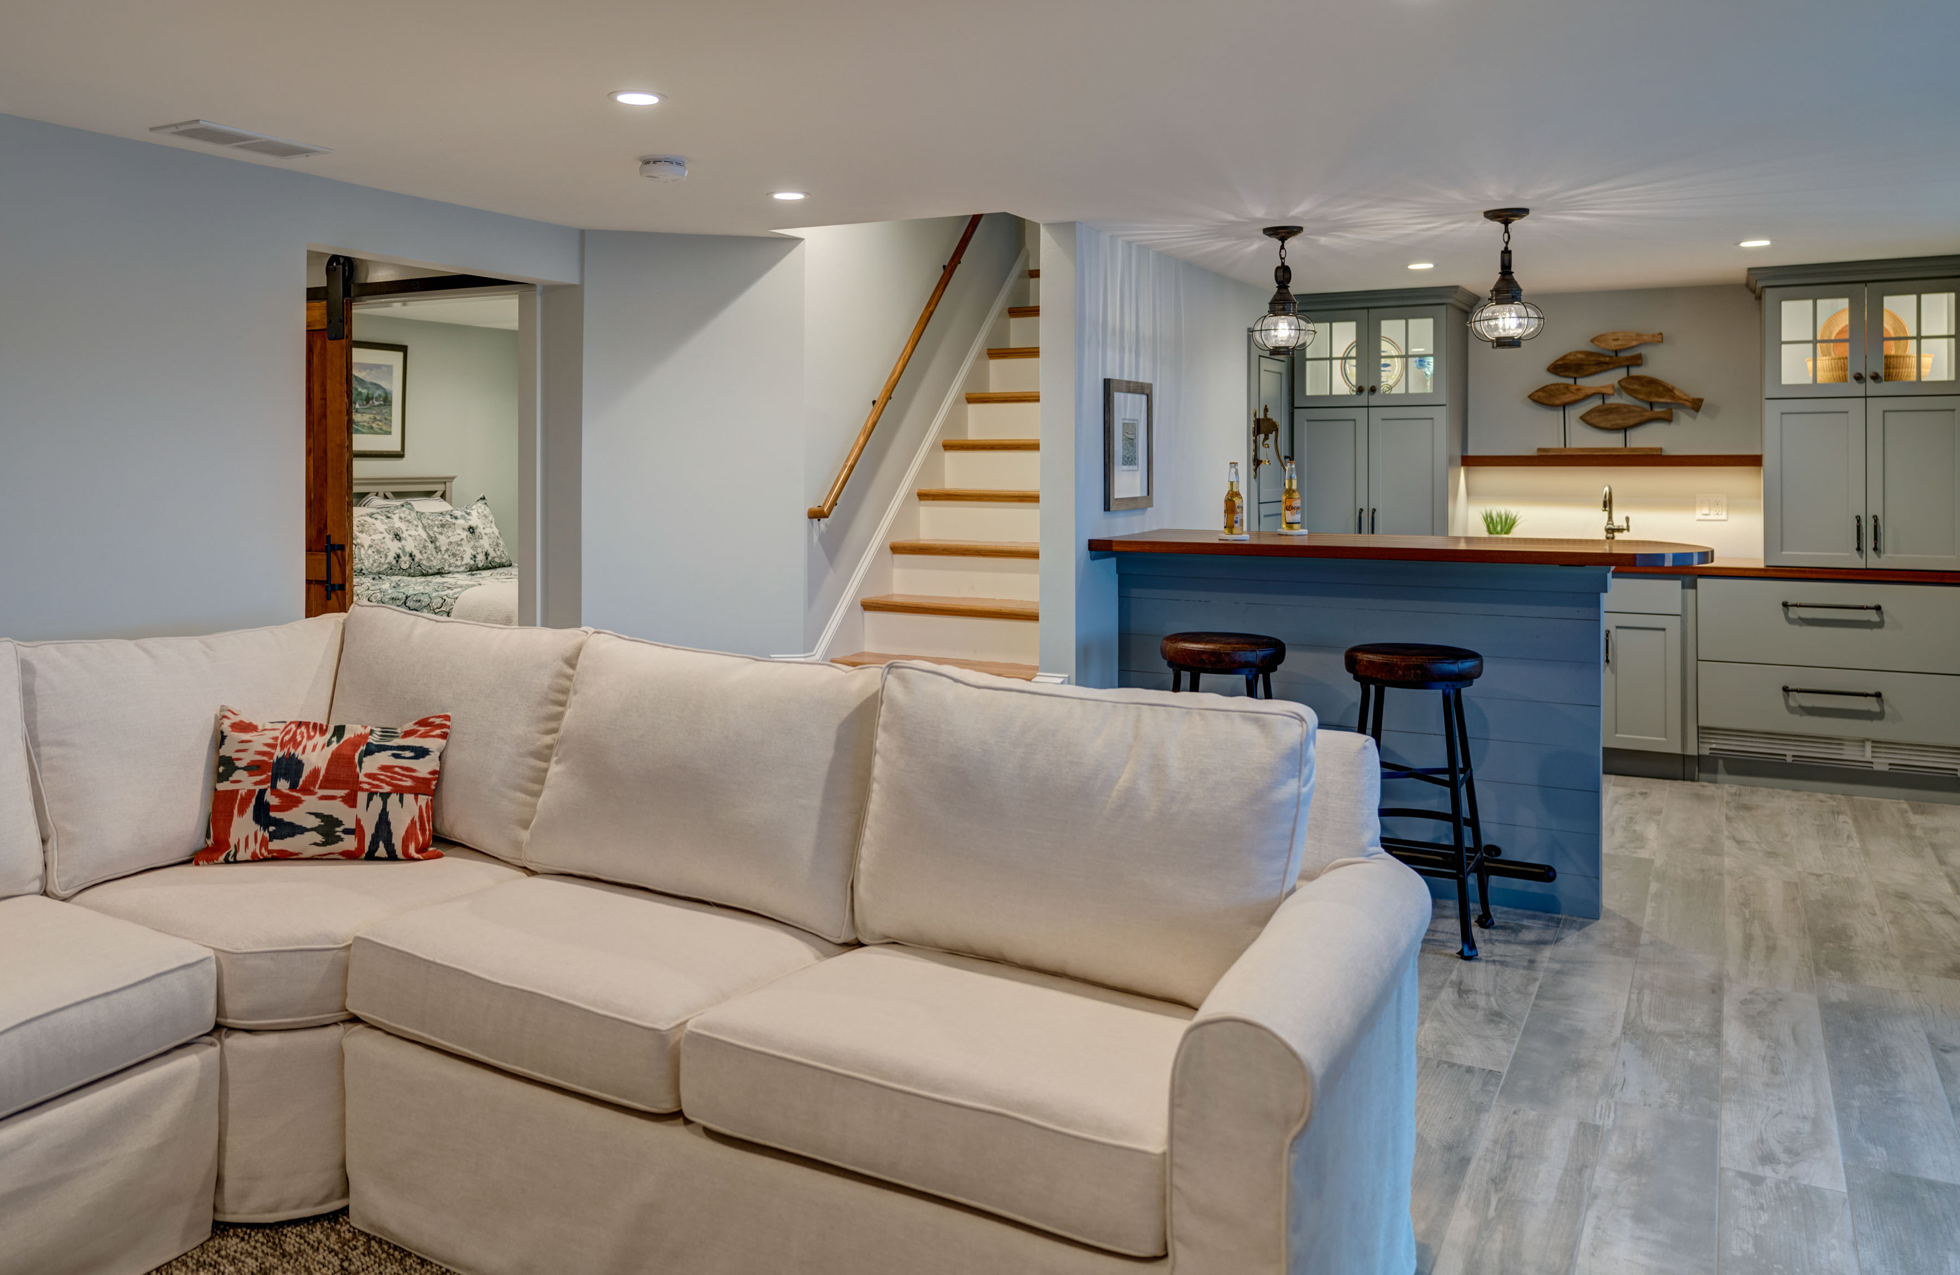 Renovated home basement